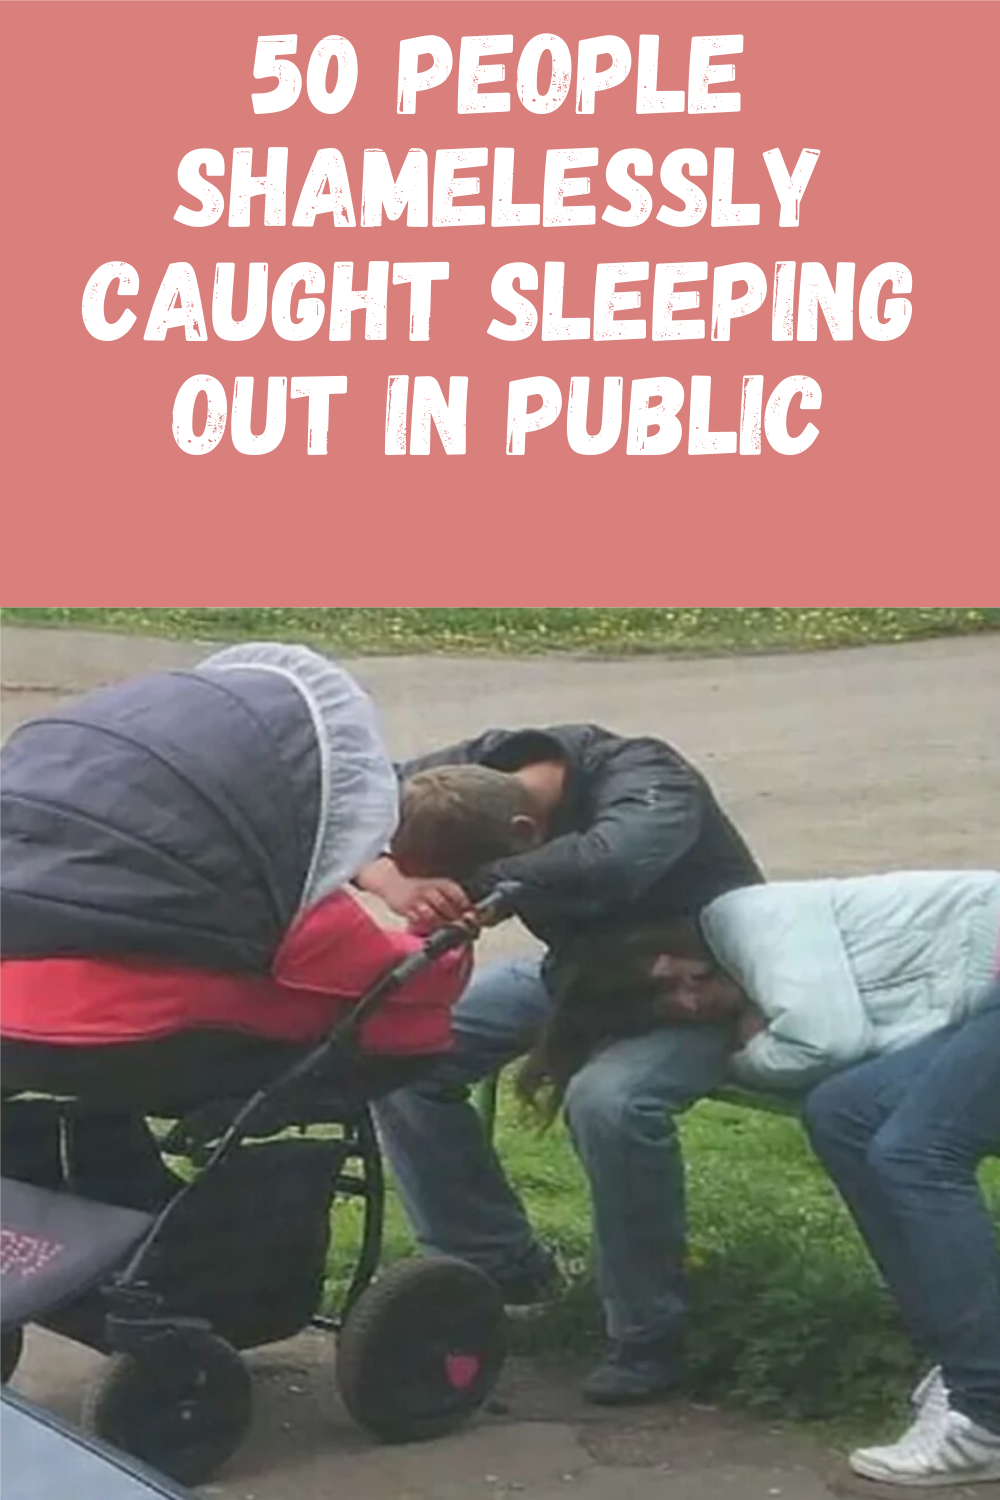 50 people shamelessly caught sleeping in outrageous positions out in public